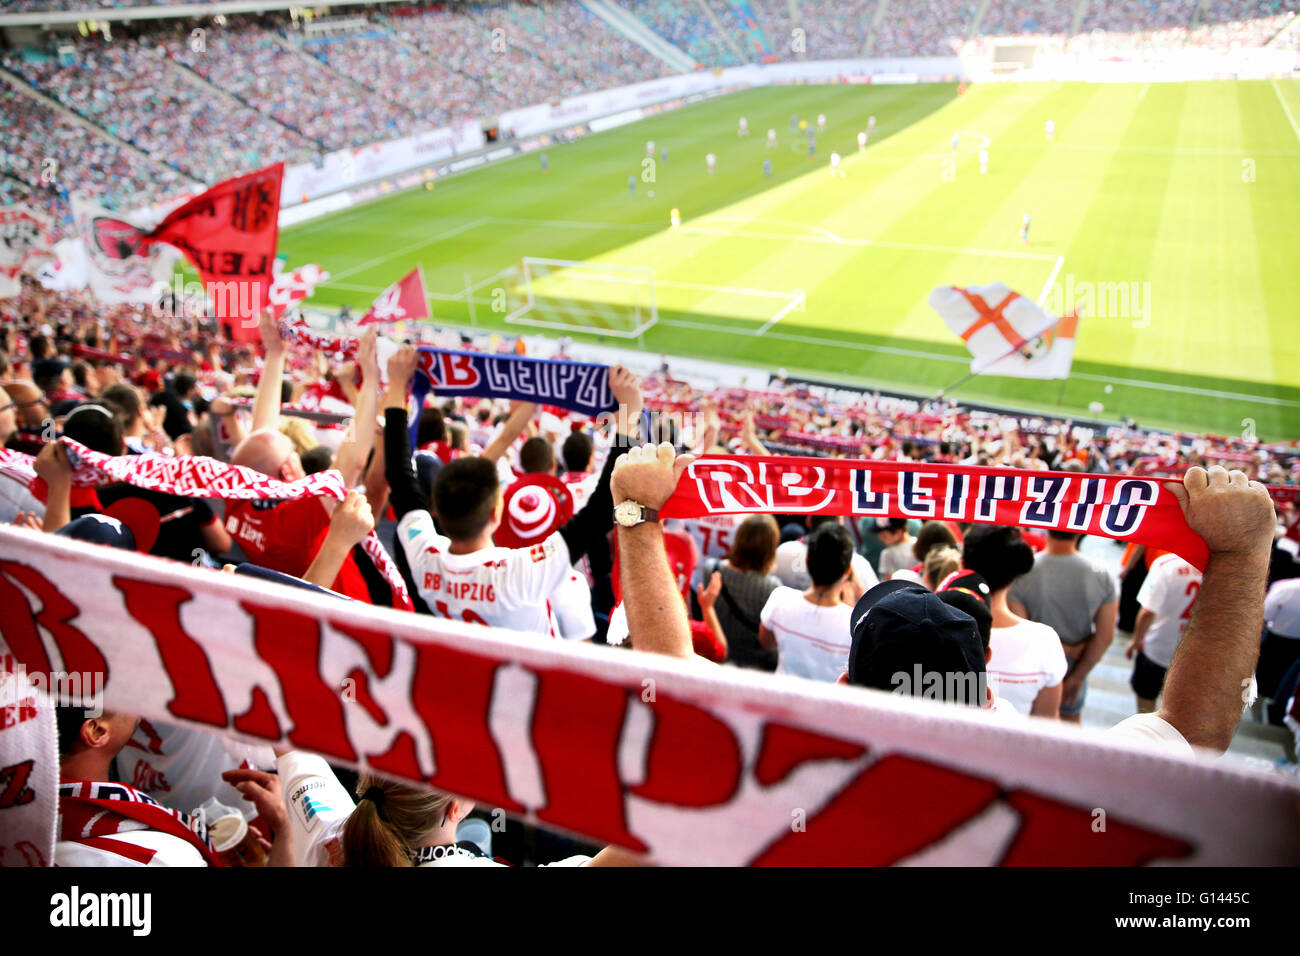 Leipzig, Germany. 08th May, 2016. Supporters cheer for their teams from the viewing stands at the German second division Bundesliga soccer match between RB Leipzig and Karlsruhe SC at the Red Bull Arena in Leipzig, Germany, 08 May 2016. Photo: JAN WOITAS/dpa (EMBARGO CONDITIONS - ATTENTION: Due to the accreditation guidelines, the DFL only permits the publication and utilisation of up to 15 pictures per match on the internet and in online media during the match.)/dpa/Alamy Live News Stock Photo